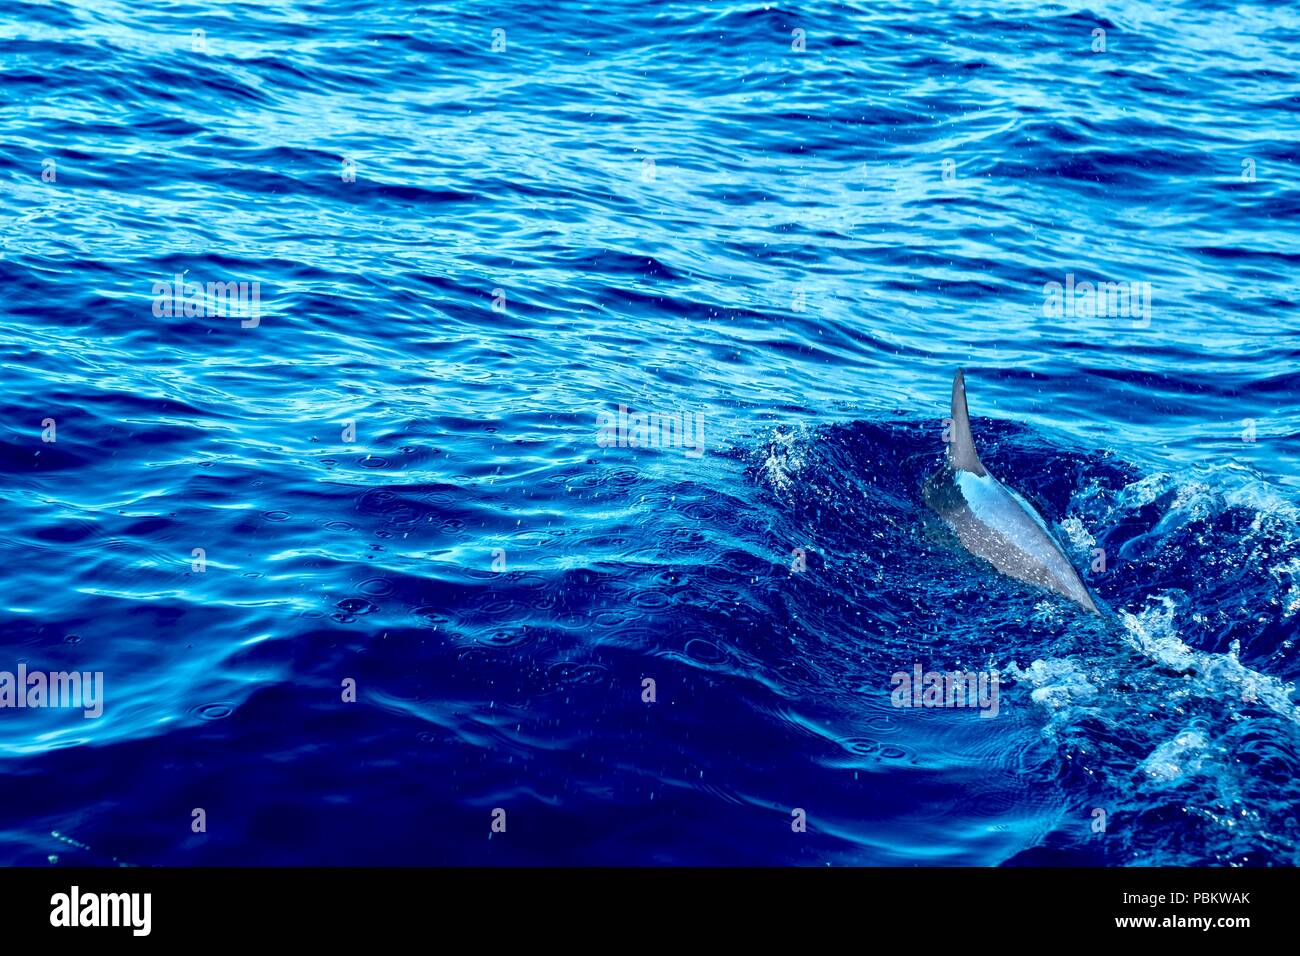 Spotted dolphin swimming in front of a boat - Stock Image